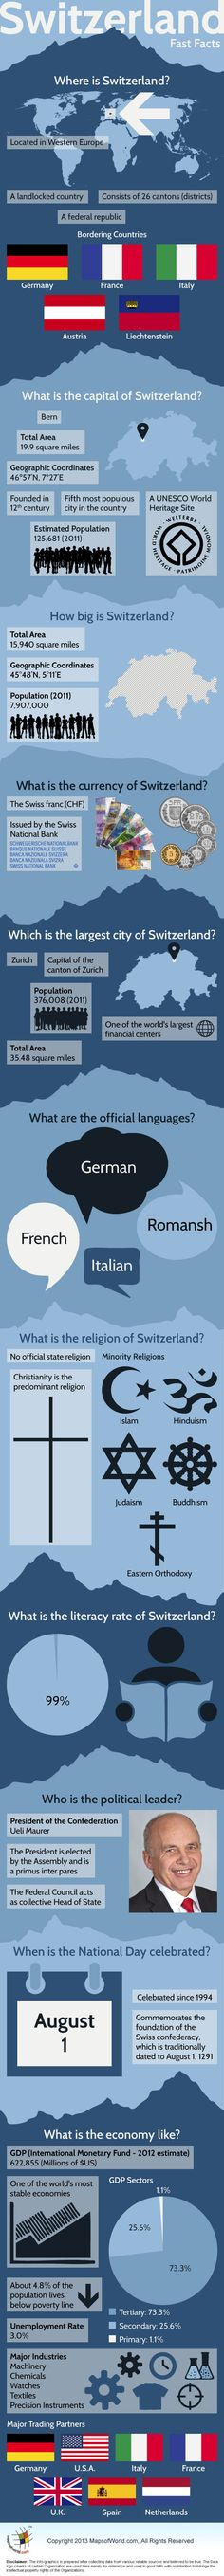 """"""" Back to the basics """" Infographic of Switzerland Facts ( note Aug 1 has been celebrated since 1291 )"""